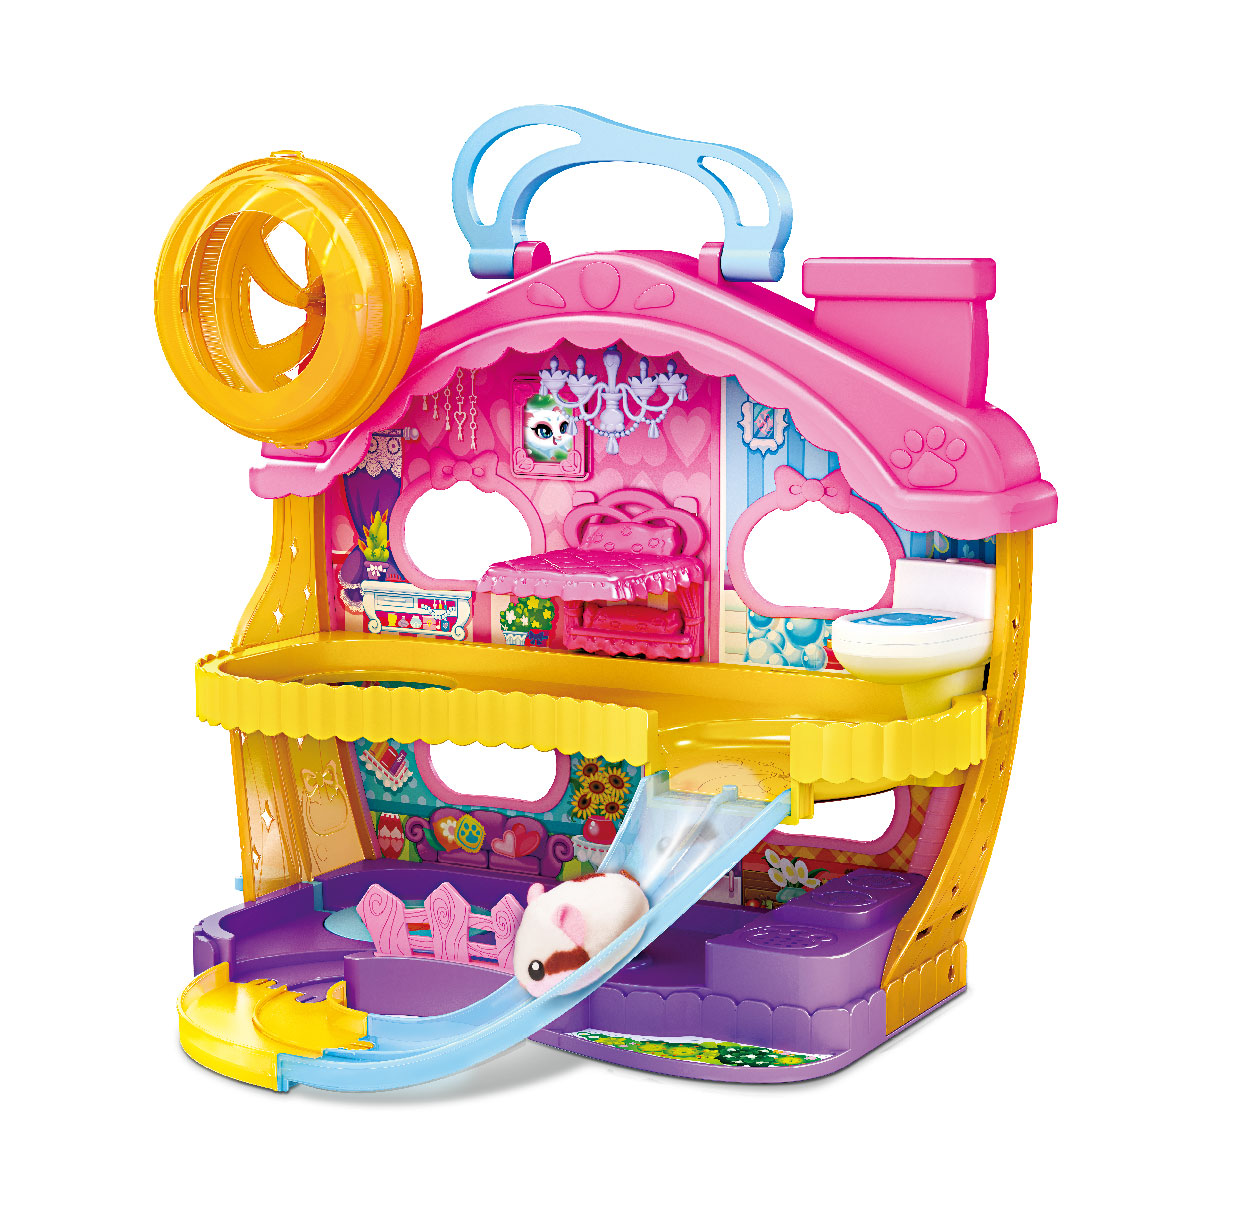 WIN – 1 of 2 Zuru Toy Packs valued at $99.96 each!